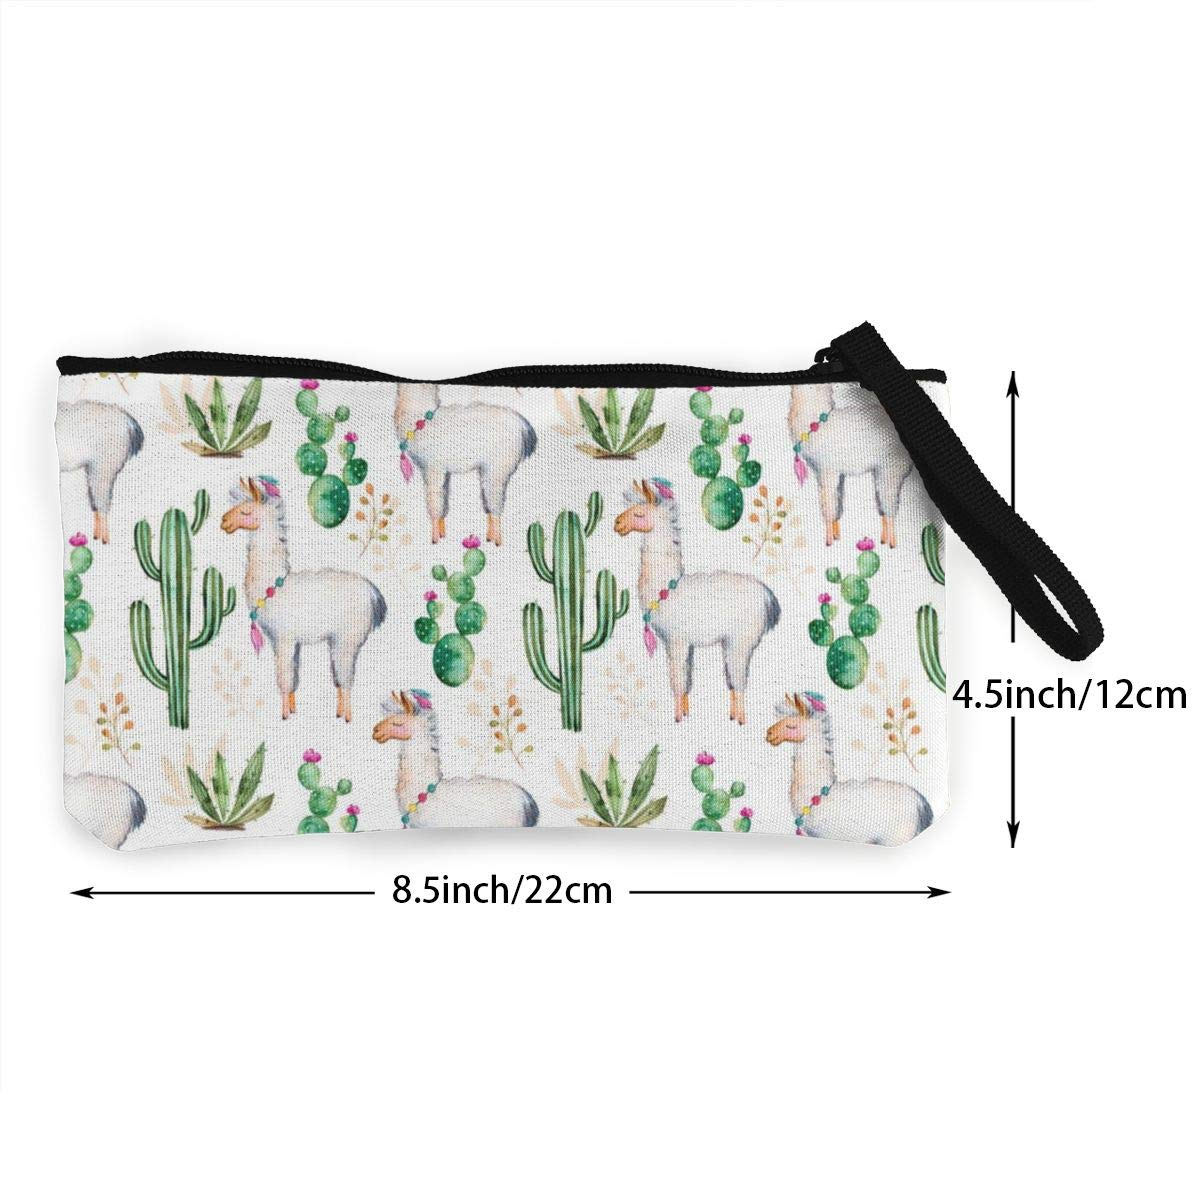 YUANSHAN Alpaca and Green Cactus Pattern Unisex Canvas Coin Purse Change Cash Bag Zipper Small Purse Wallets with Handle